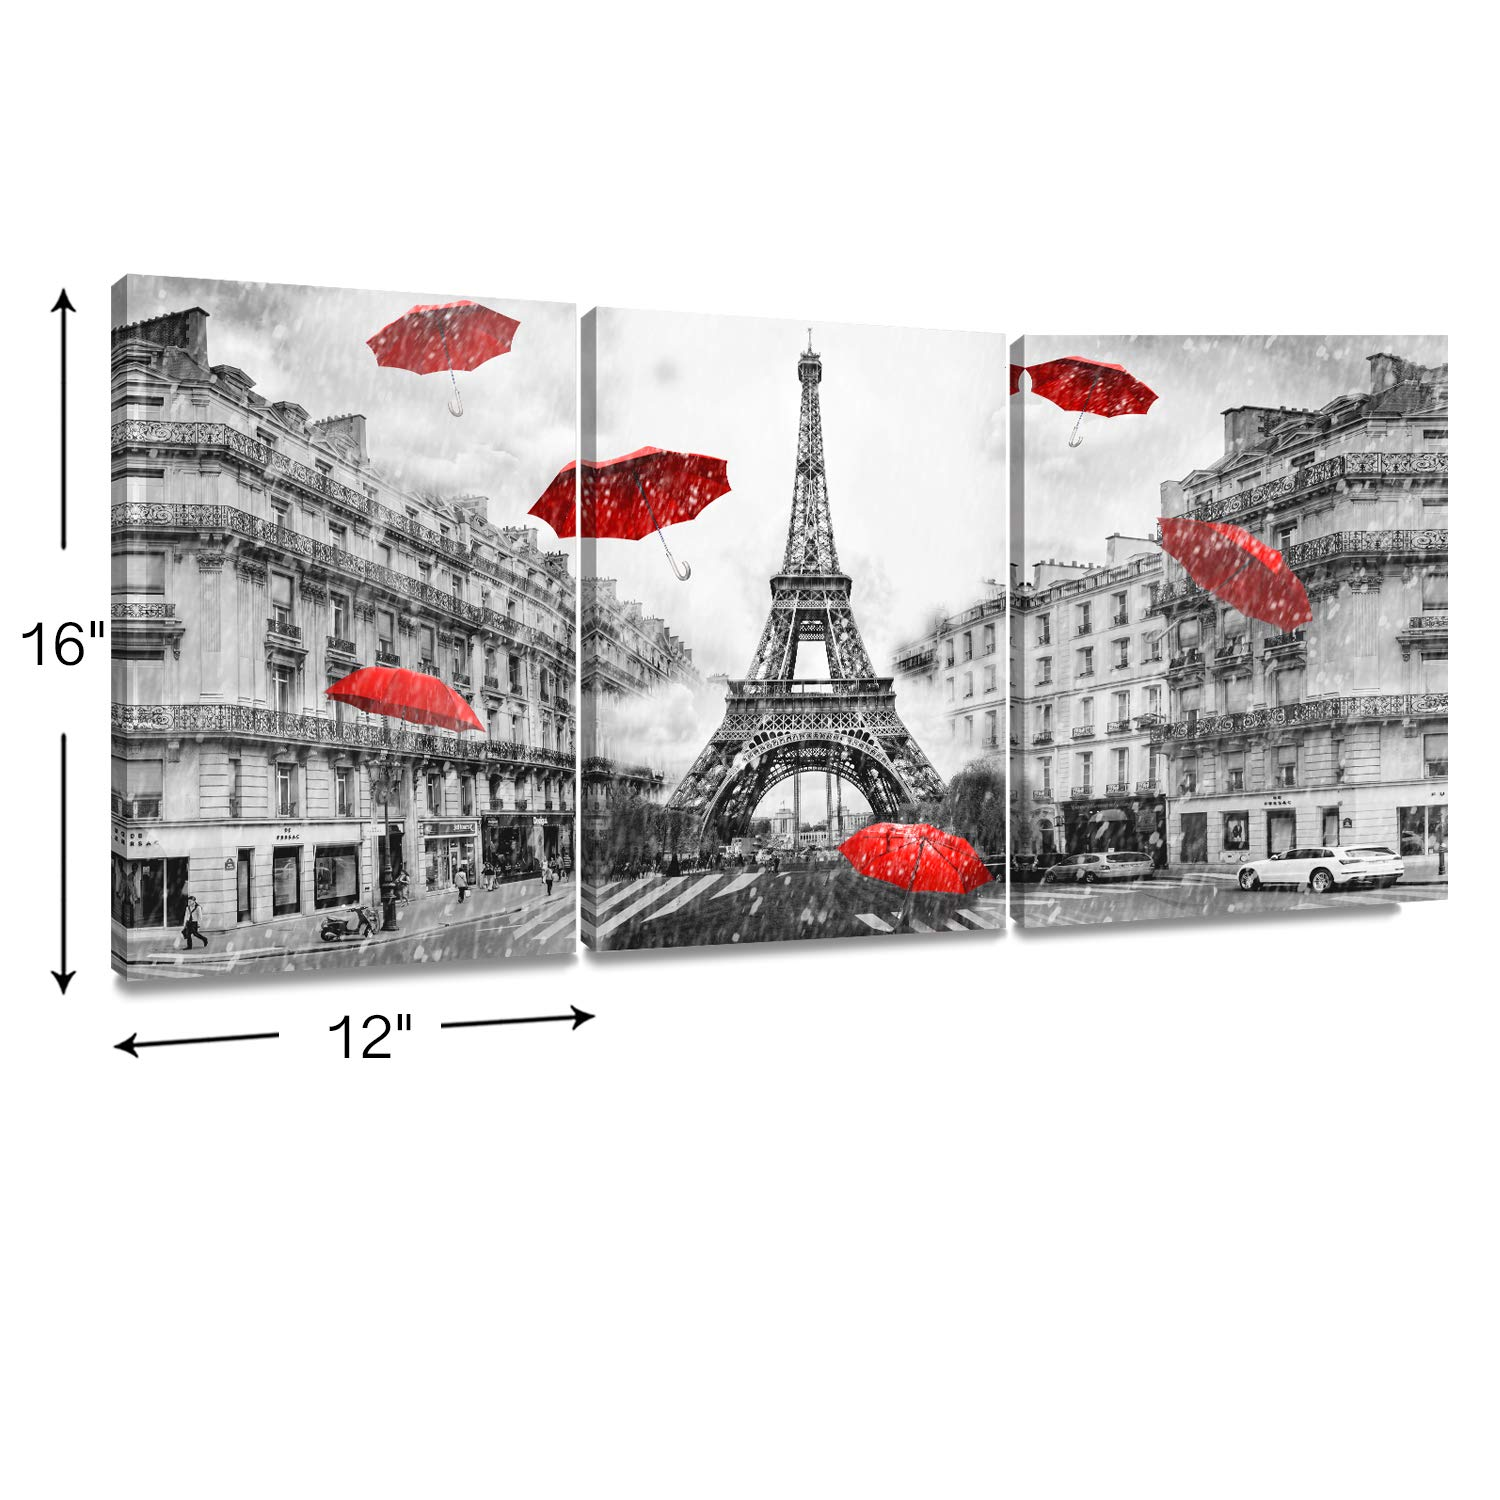 Decor mi modern wall art paris france eiffel tower home decor umbrellas romantic couple poster prints pictures of paris on canvas framed for living room